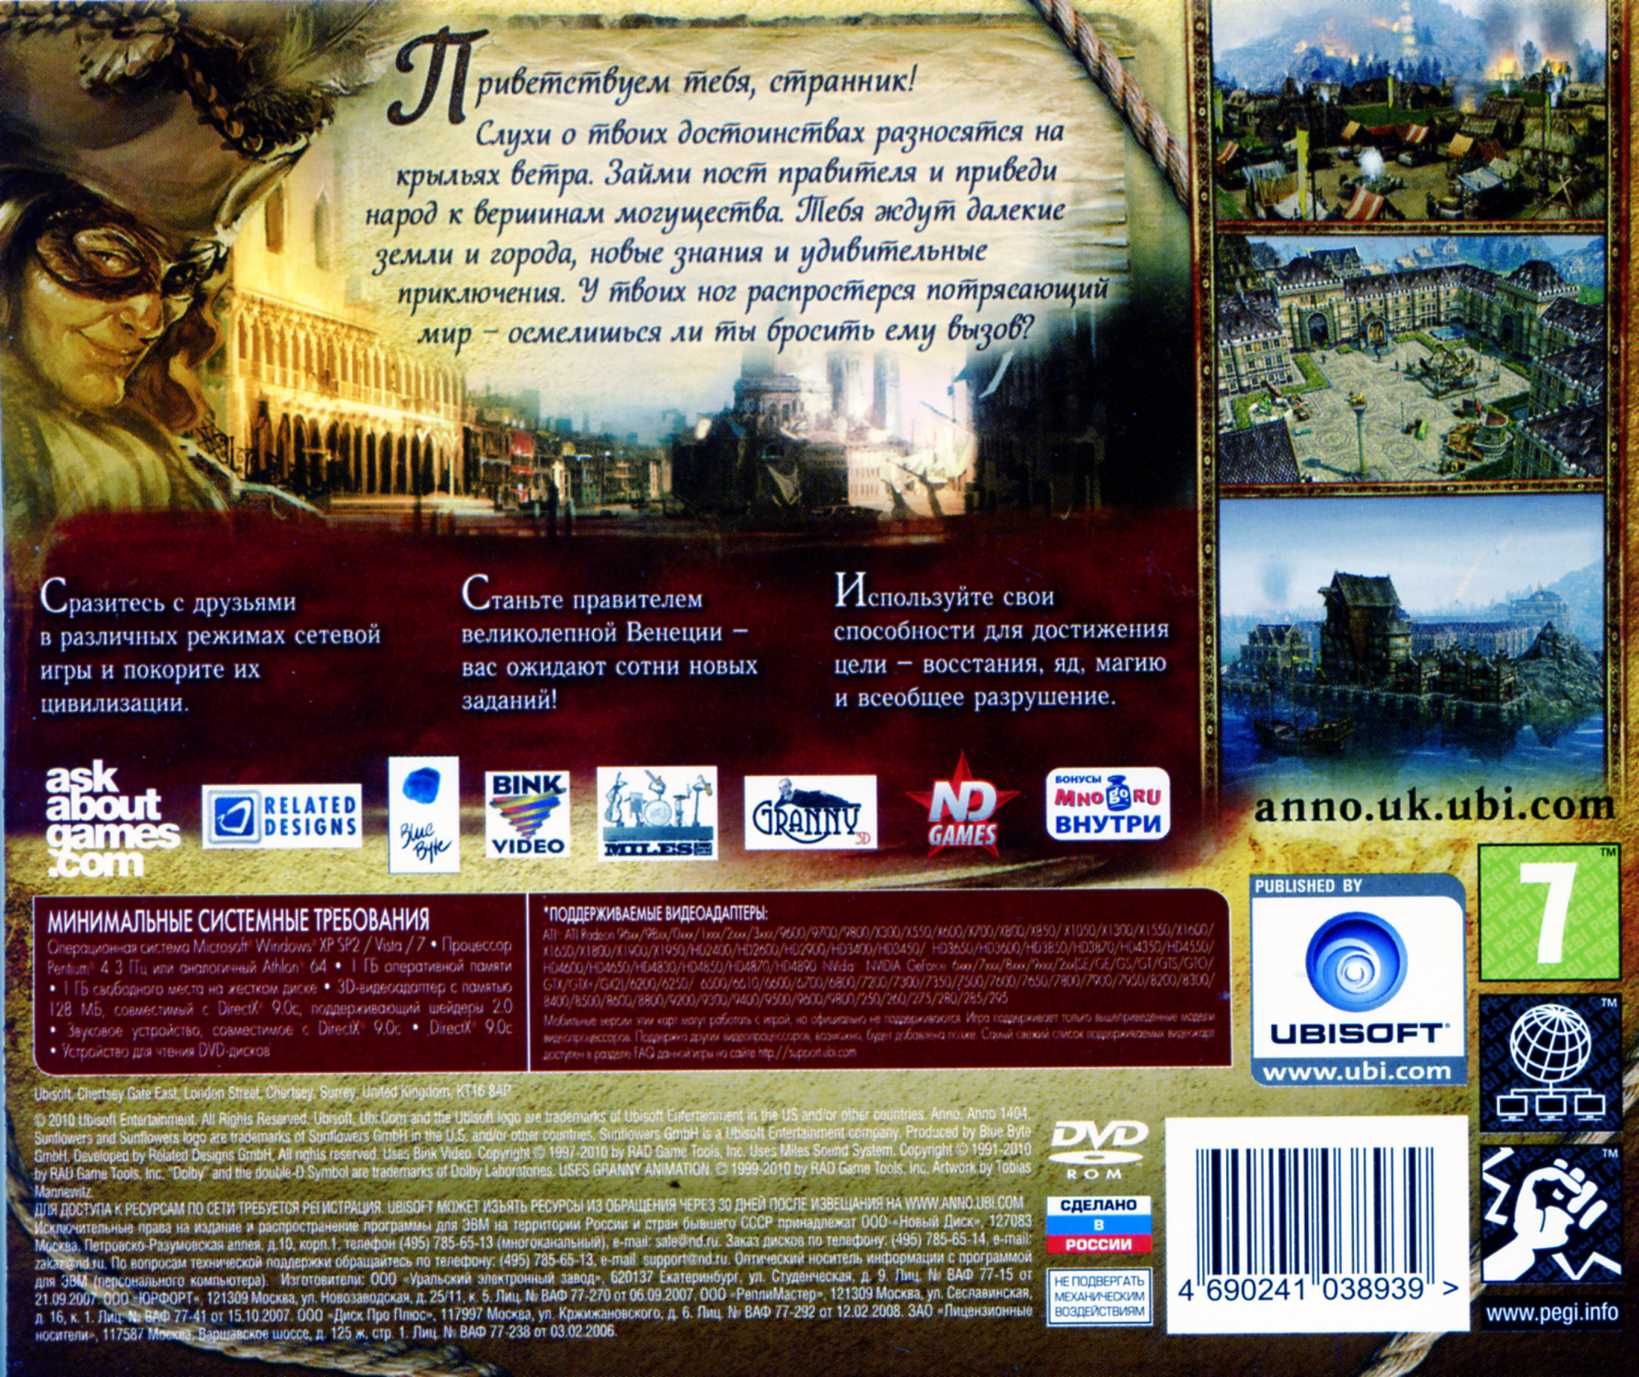 Anno 1404: Venice (Activation Key from the new disc)